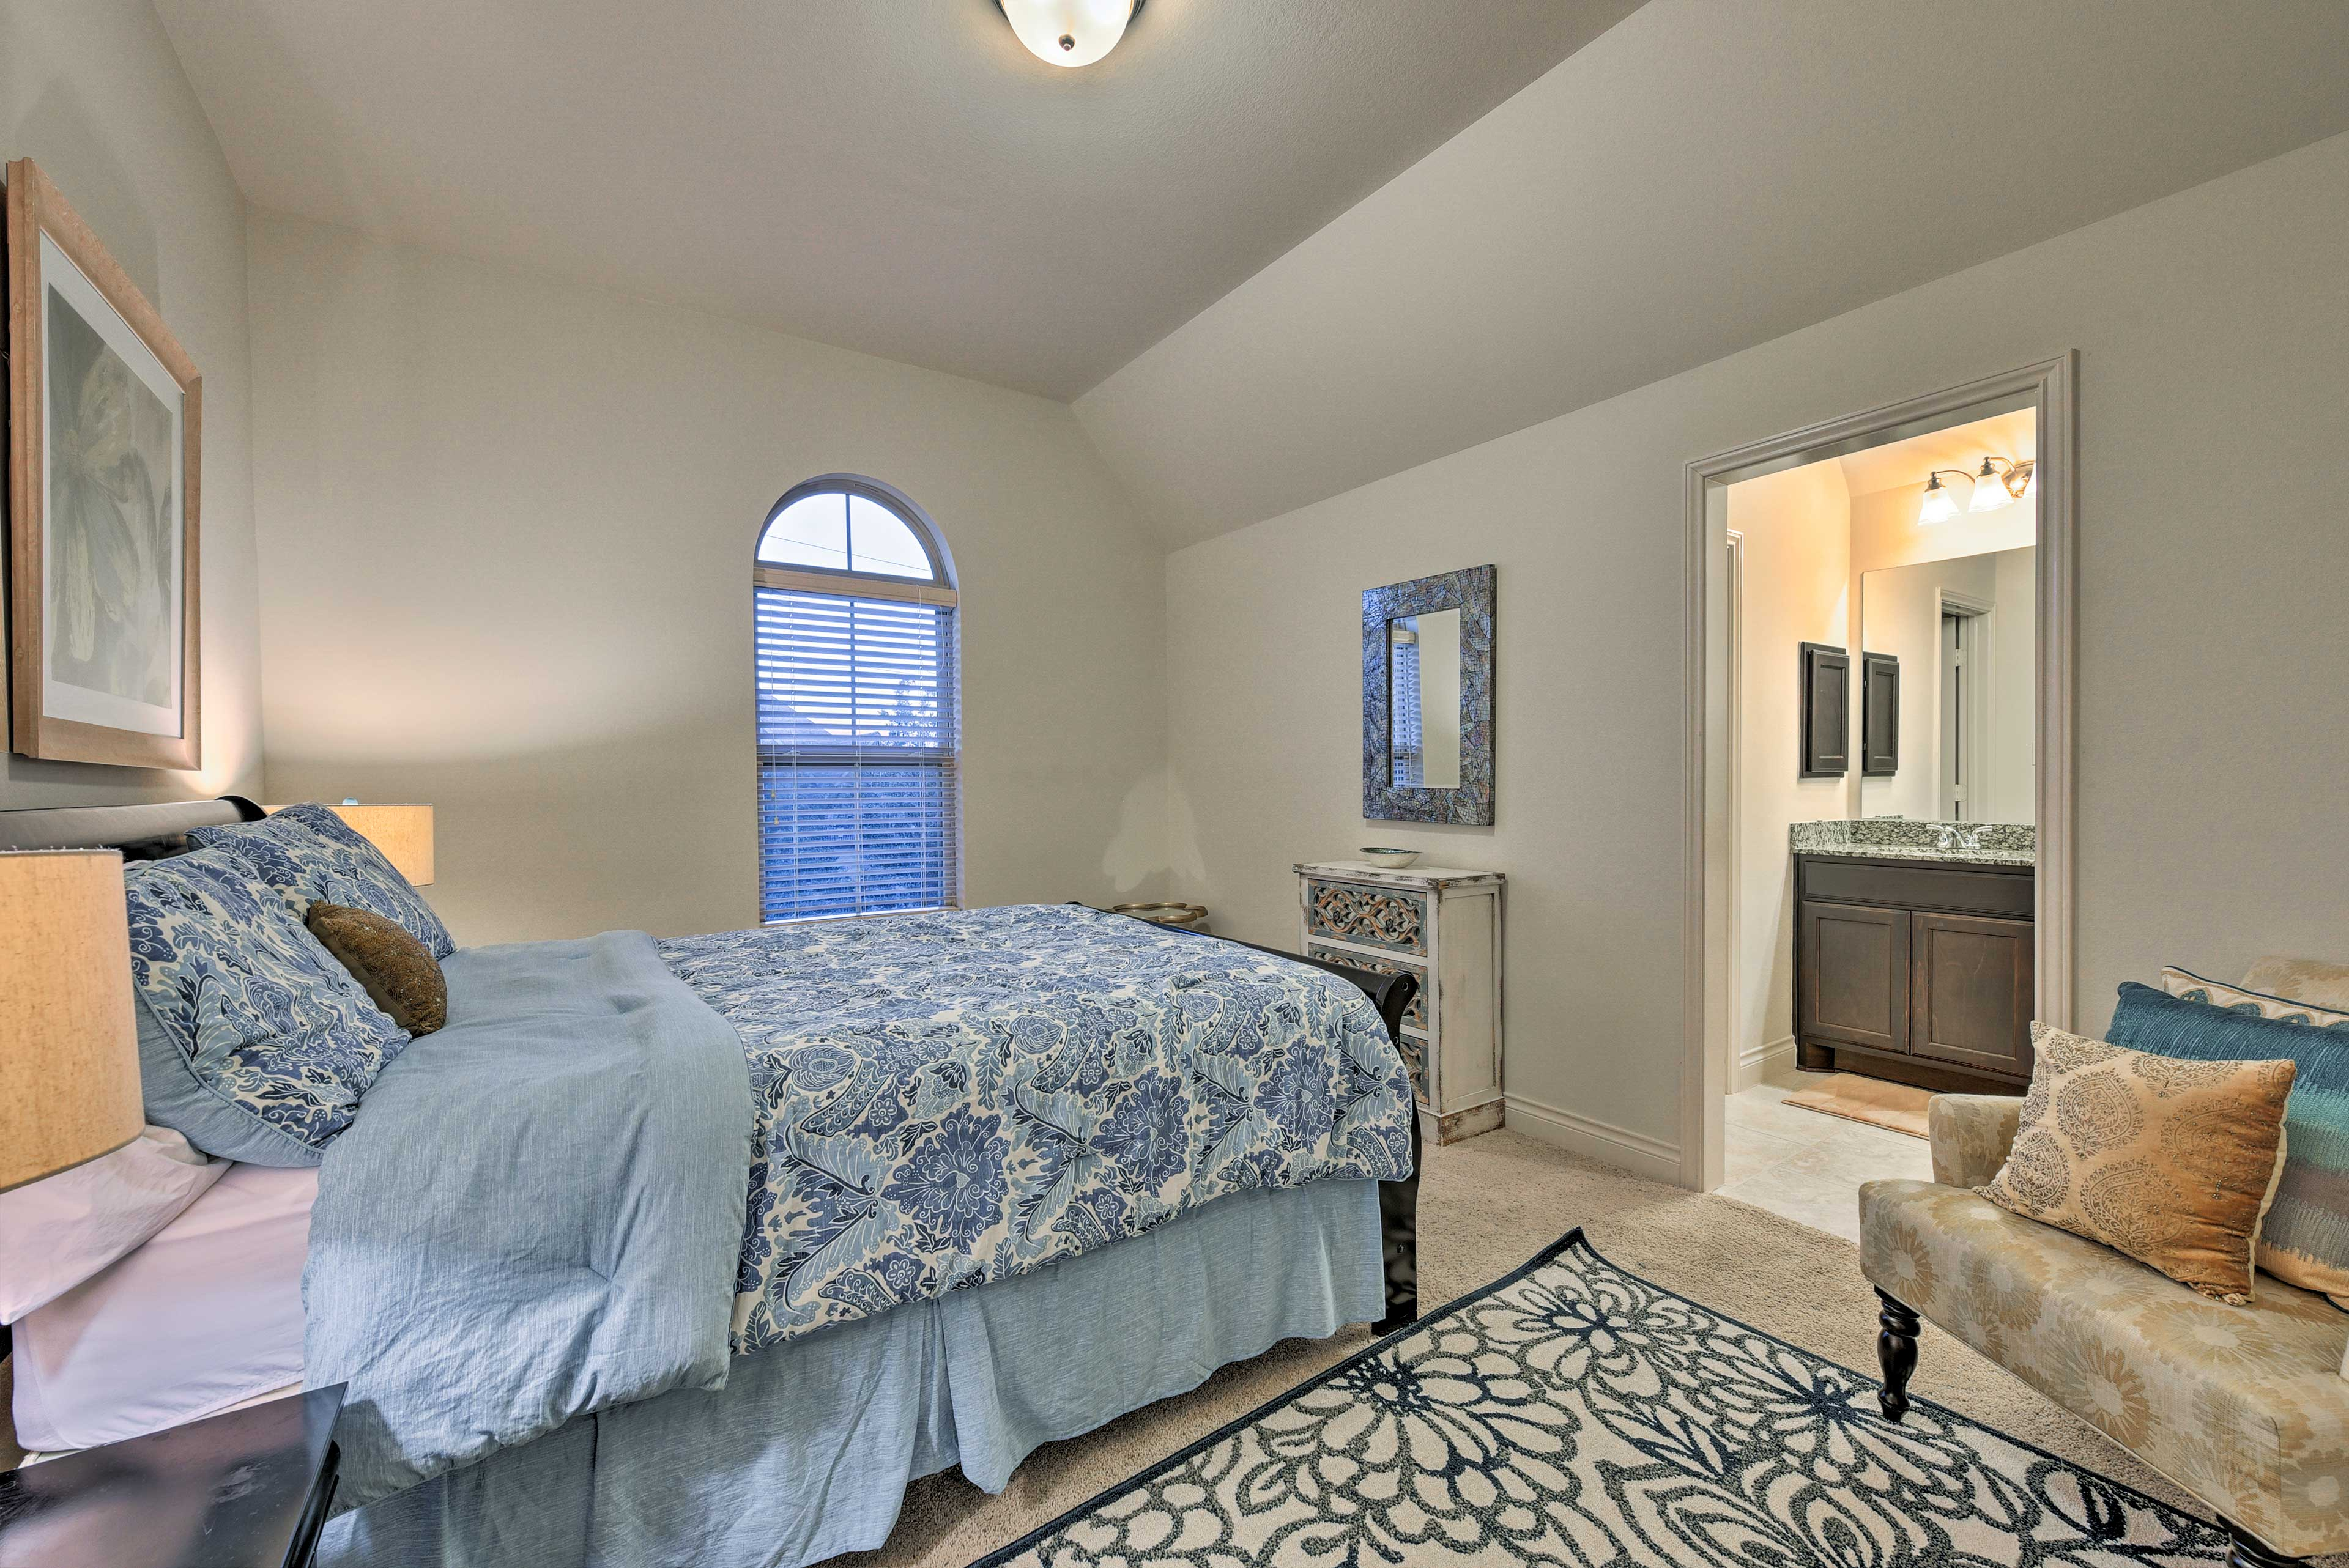 Guests are sure to sleep soundly in whichever room they choose!